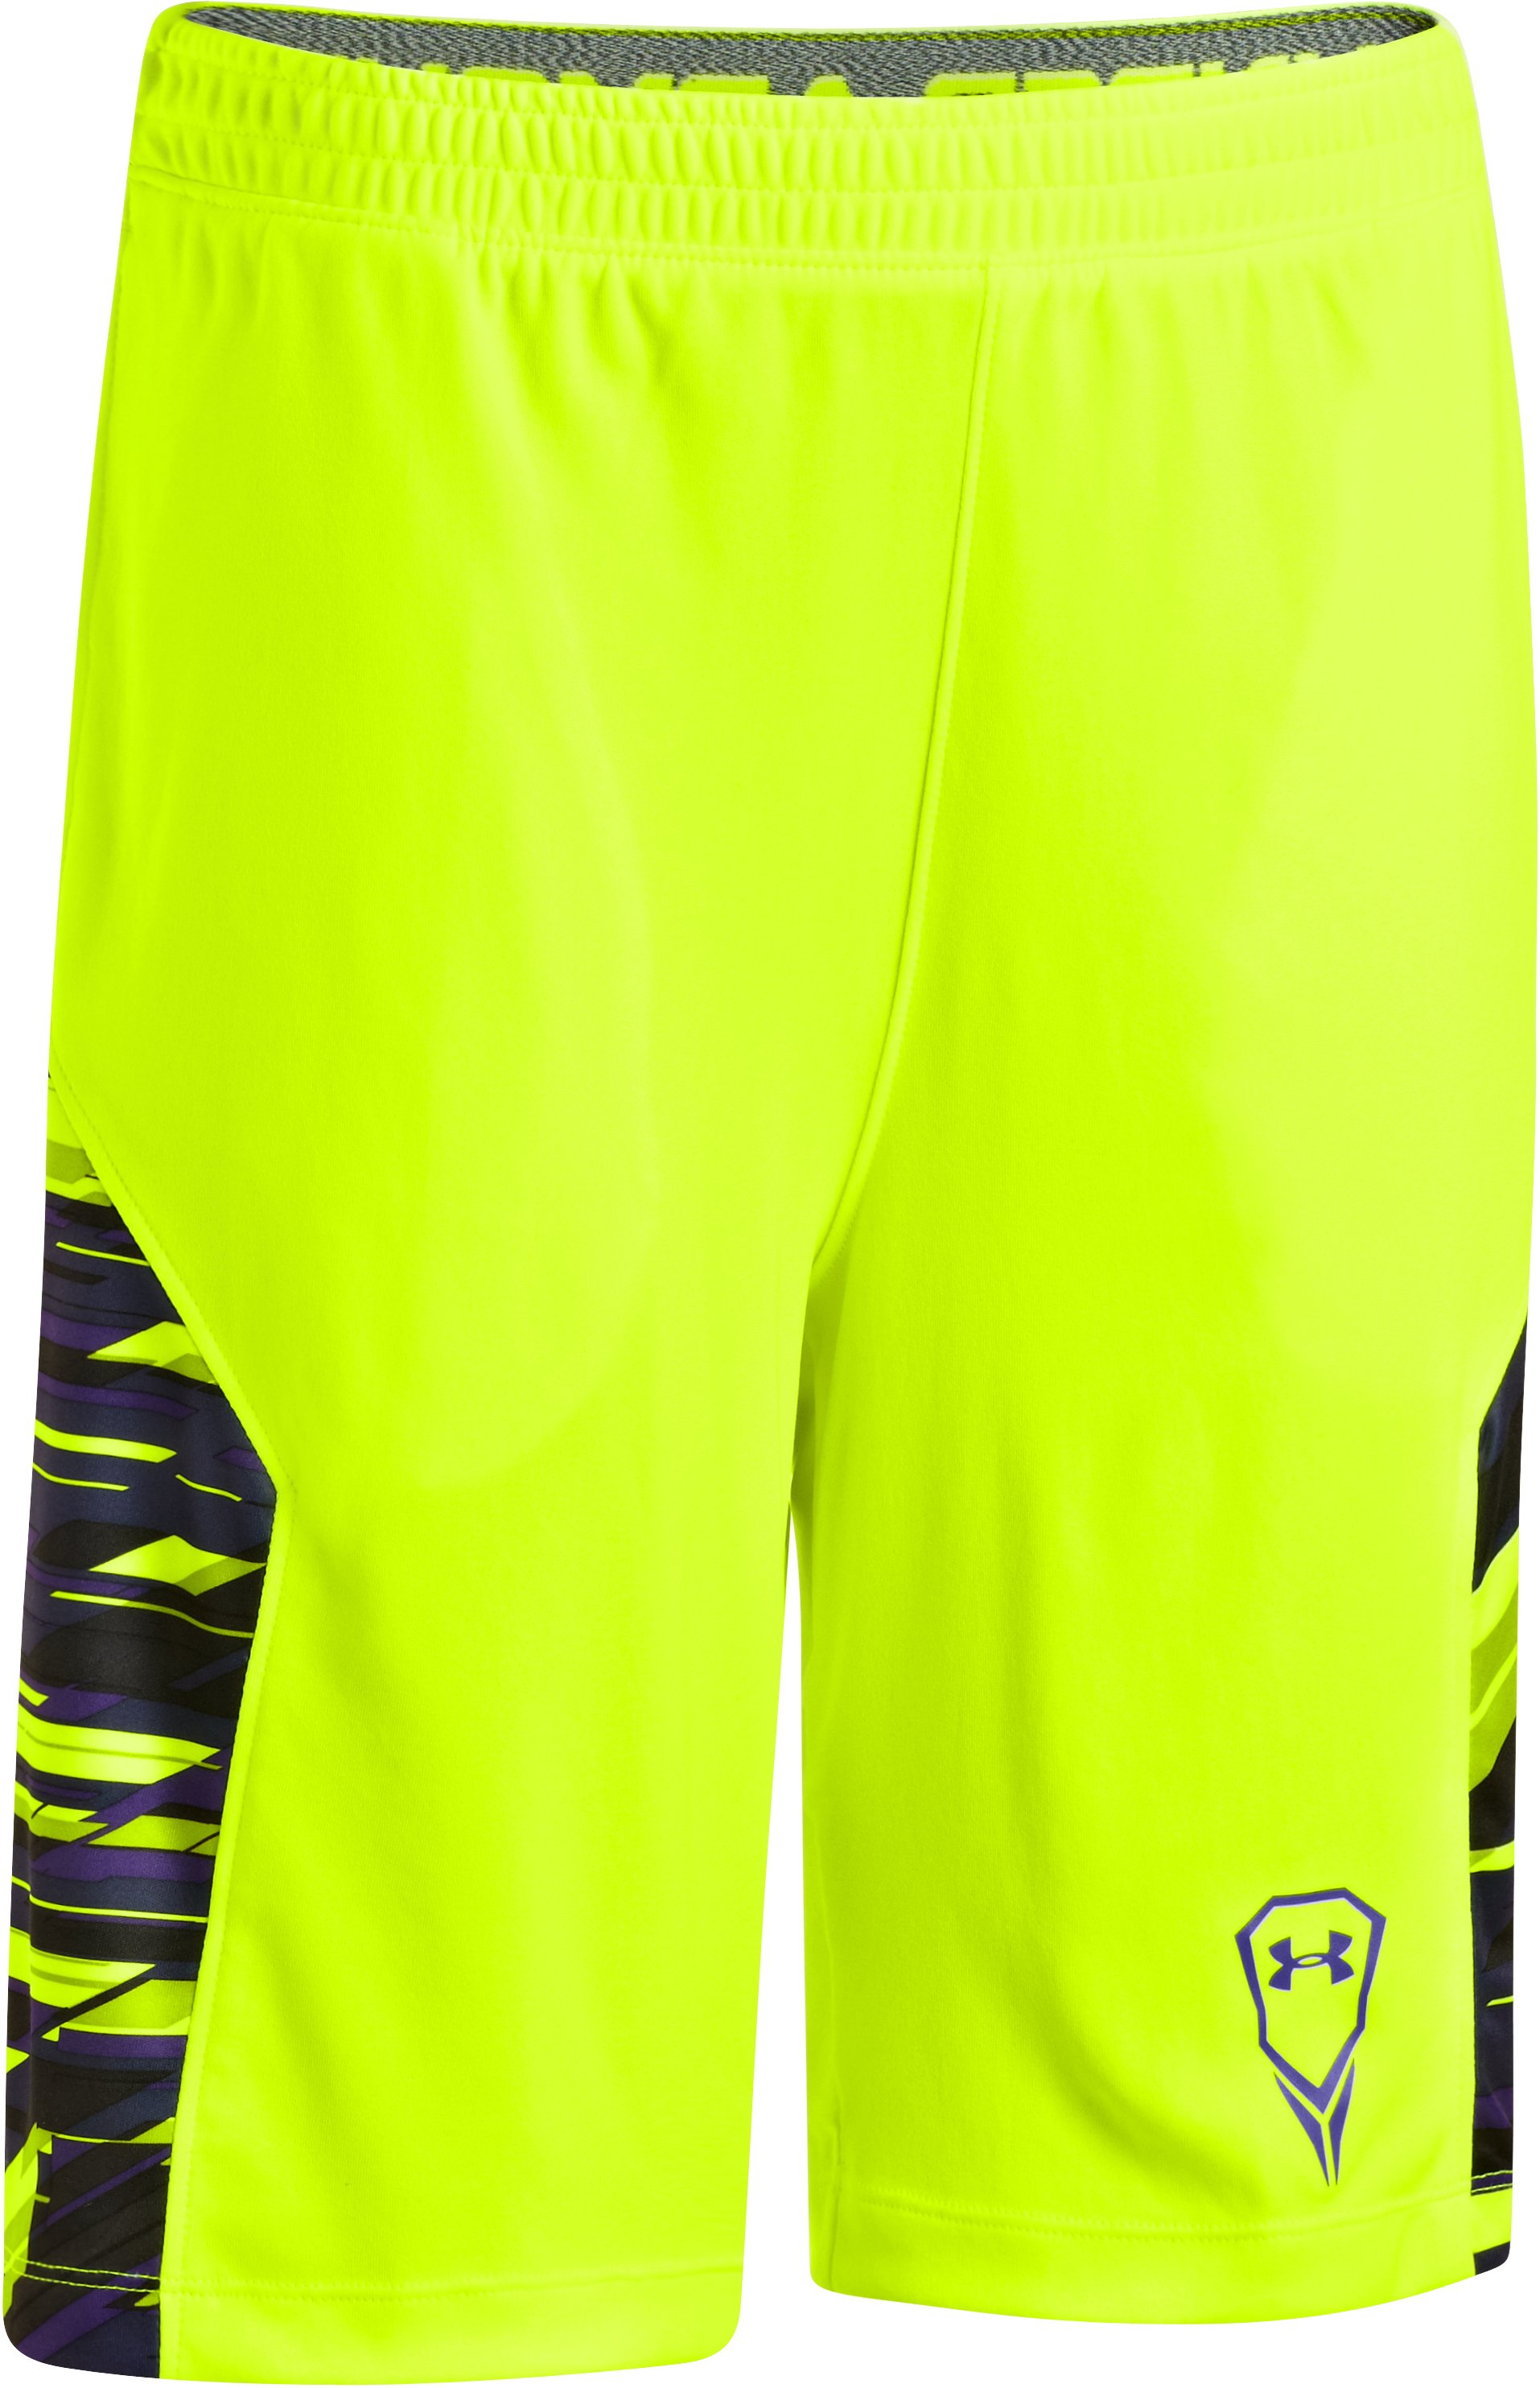 Boys' UA Uri Dicuhluss Shorts, High-Vis Yellow, zoomed image